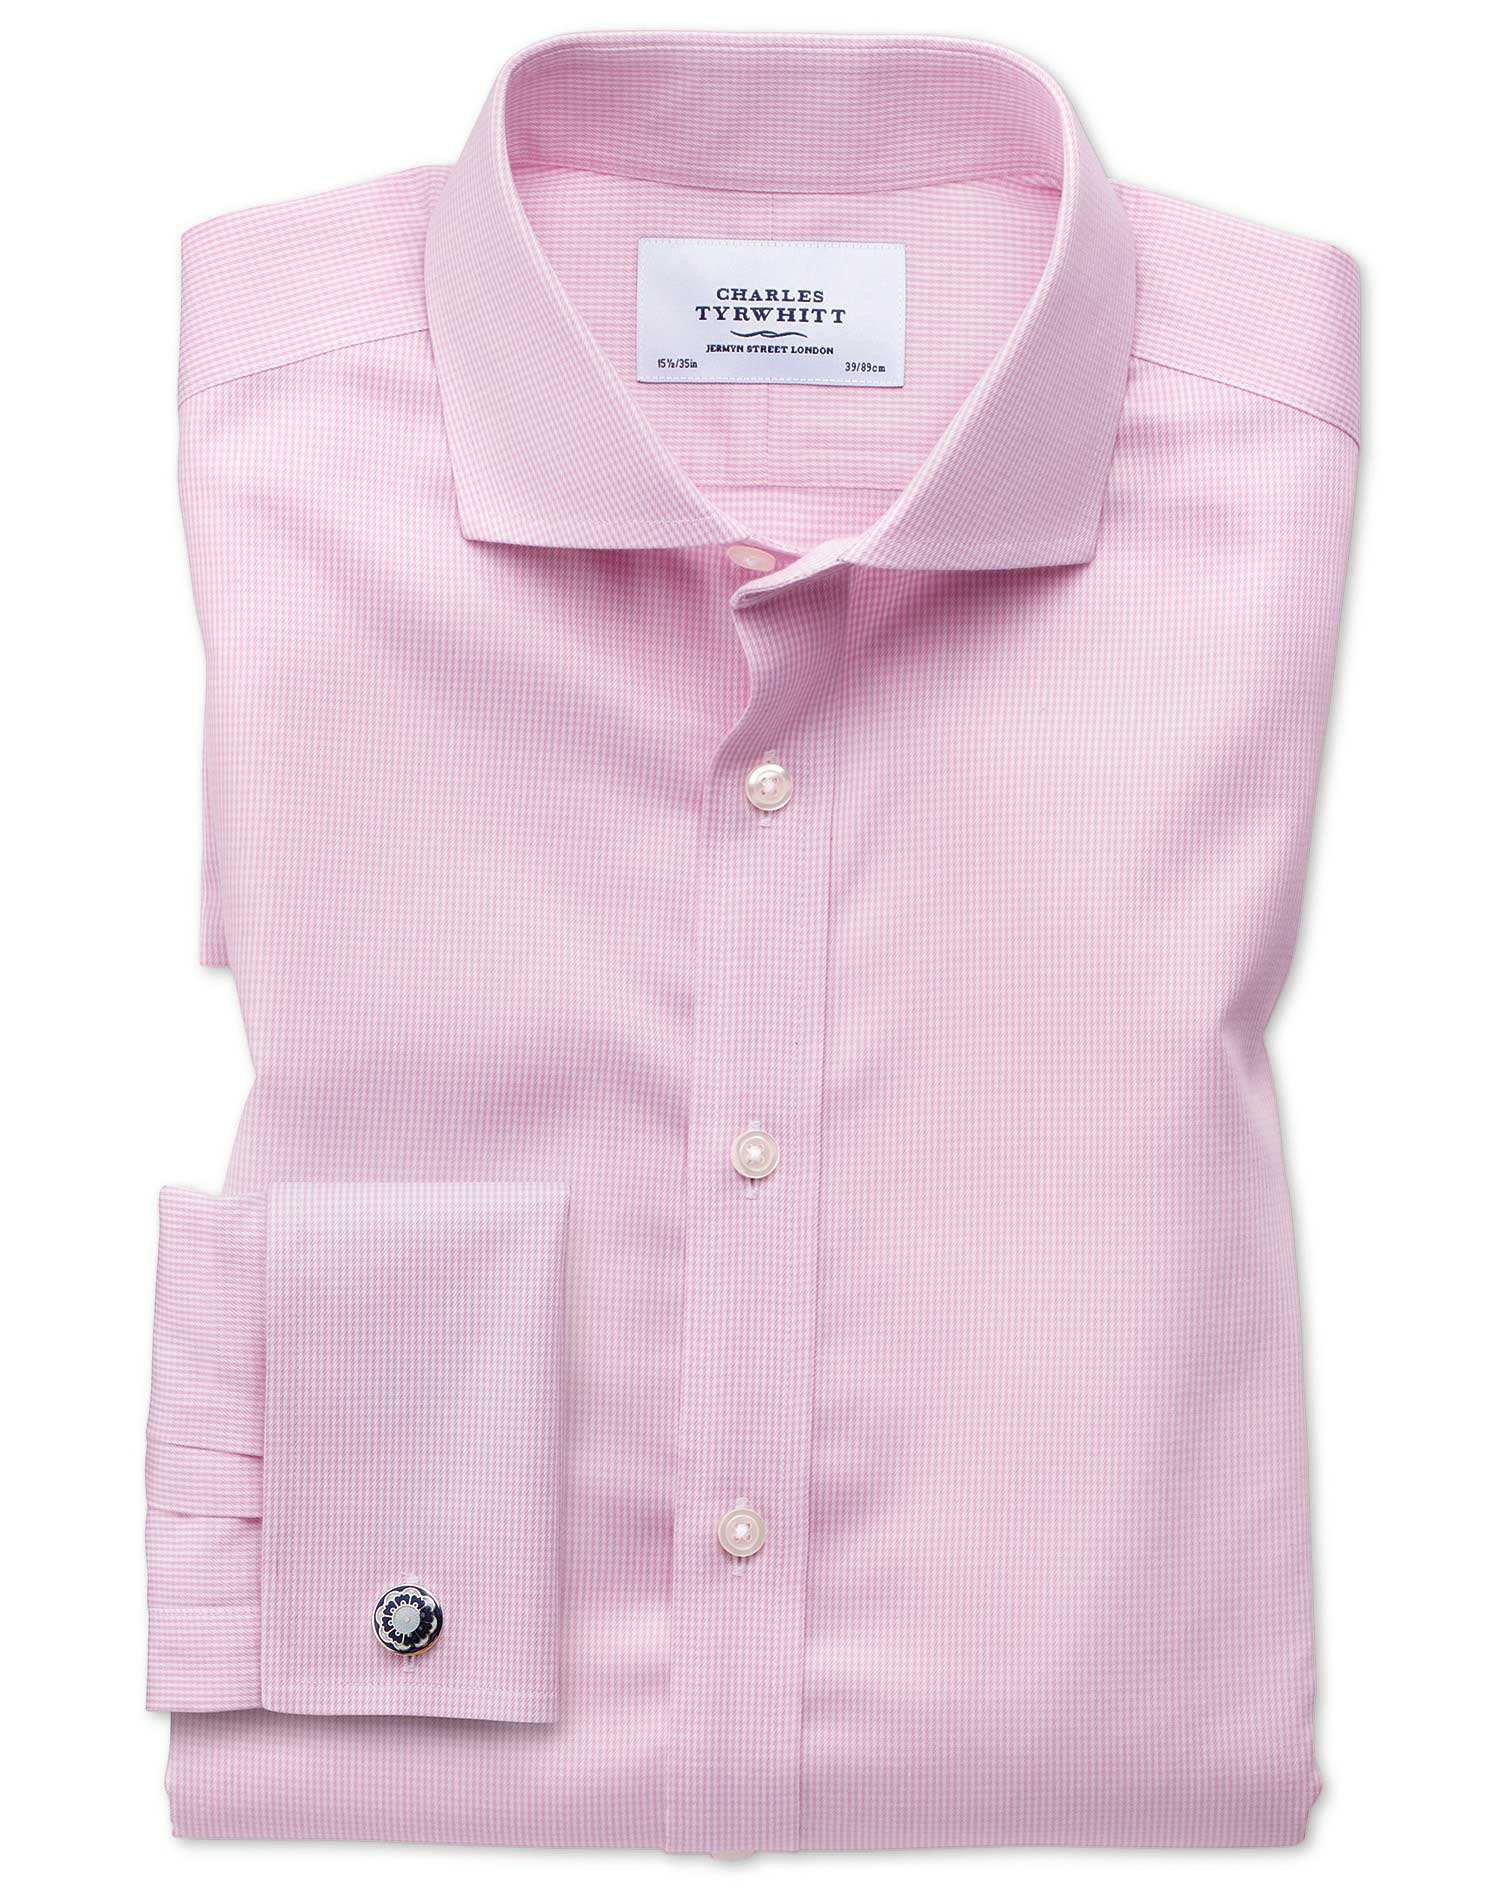 Slim Fit Cutaway Non-Iron Puppytooth Light Pink Cotton Formal Shirt Double Cuff Size 16/36 by Charle